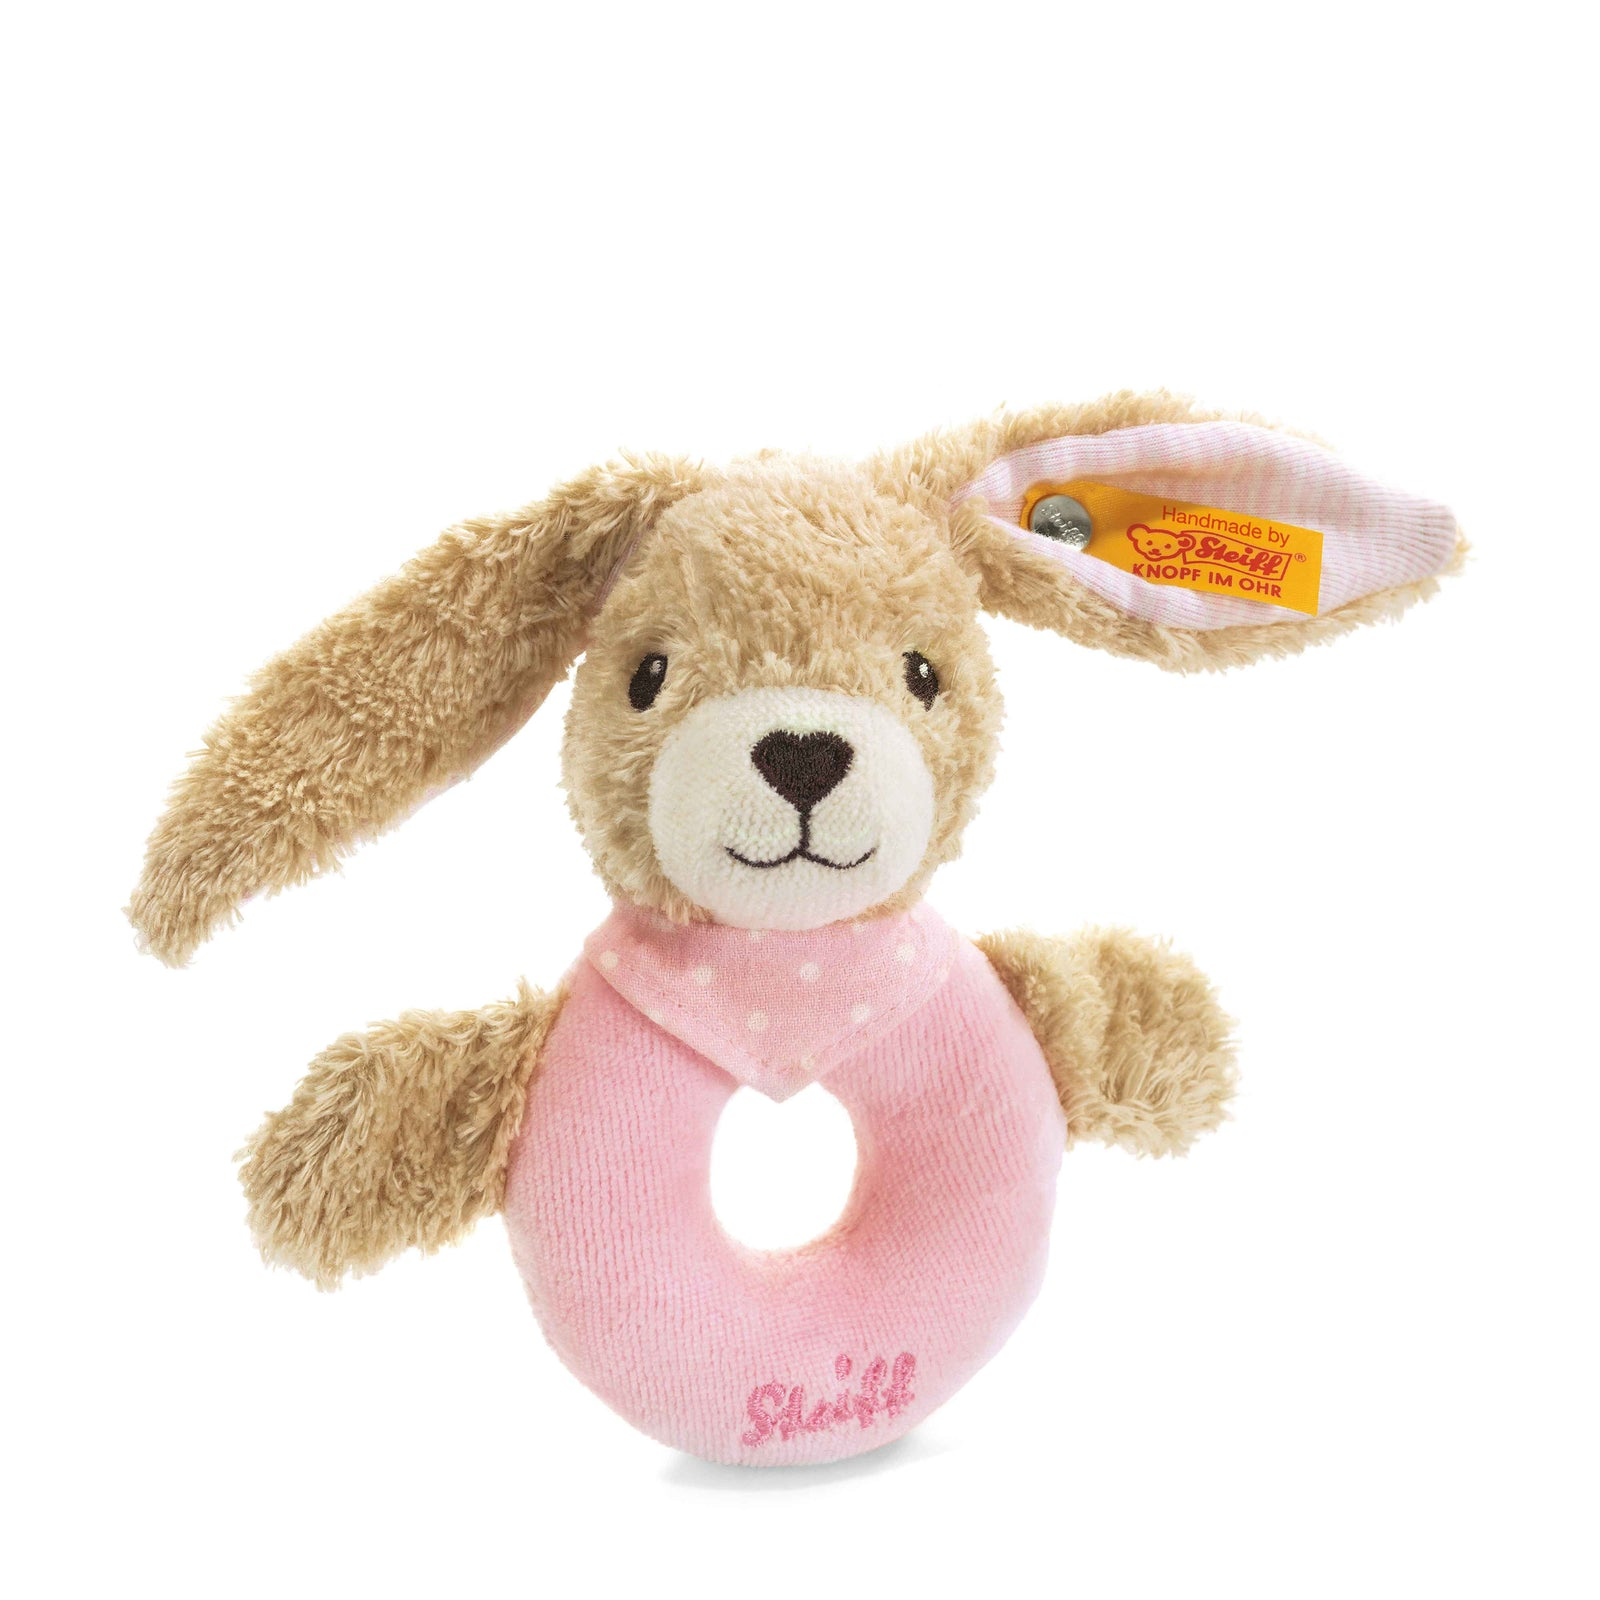 Steiff Hoppel Rabbit Grip Toy with Rattle - EAN 237591